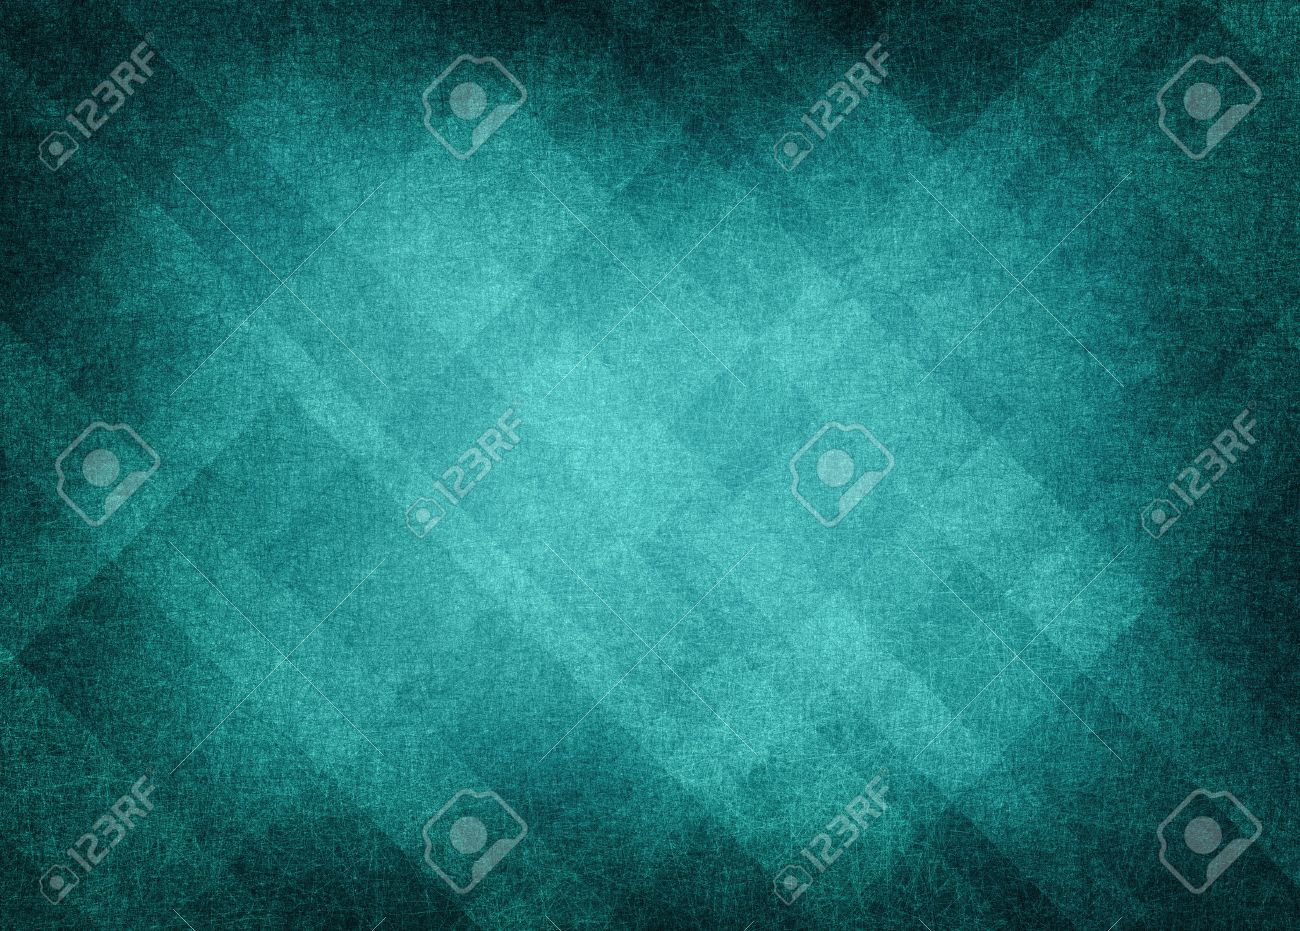 Compelling Diamond Element Pattern Stock Royalty Free Images Blue Color Palette Blue Color Shades Light Blue Background Abstract Retro Grunge Background Textureeaster Layout houzz-02 Teal Blue Color